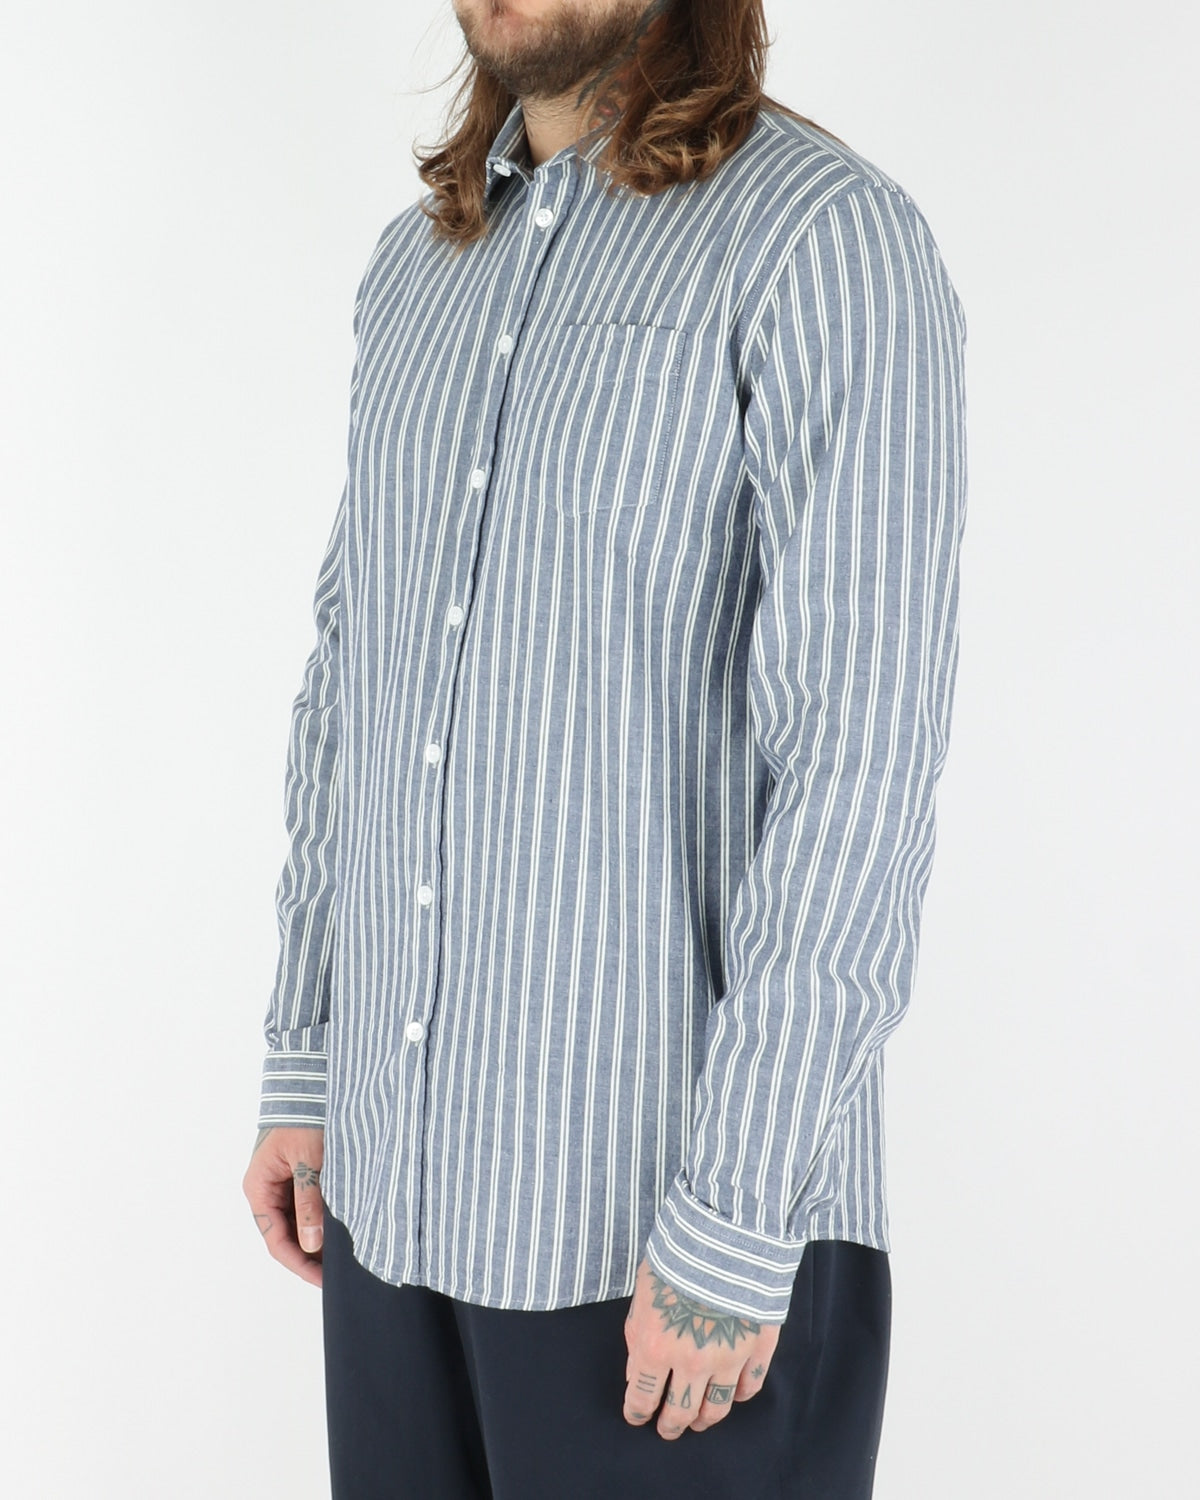 libertine libertine_lynch shirt_navy stripe_view_3_3